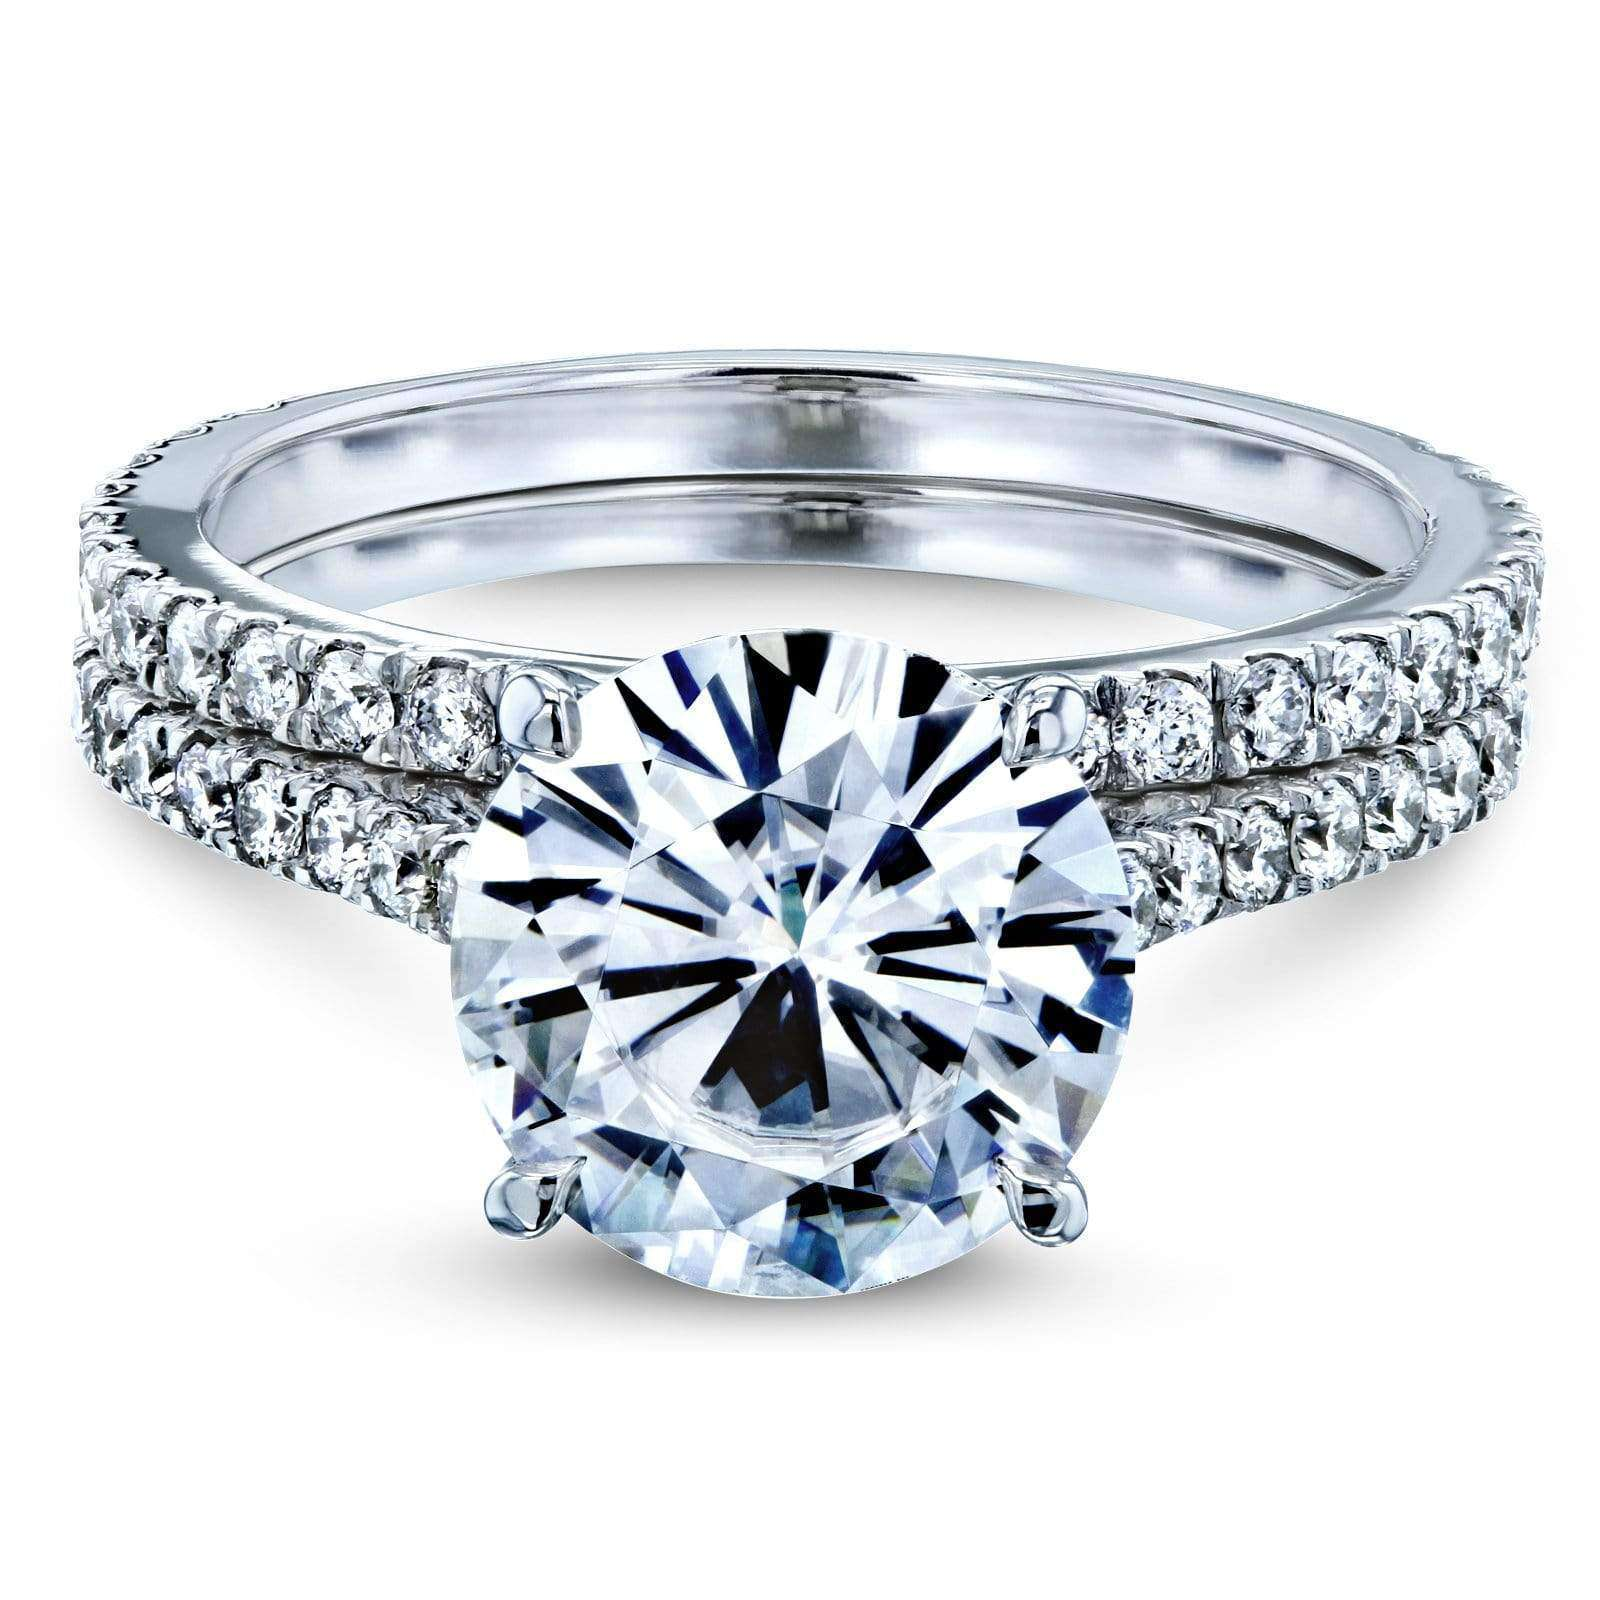 Compare Basket Cathedral 9mm Moissanite and Diamond Rings 14k White Gold - 10.5